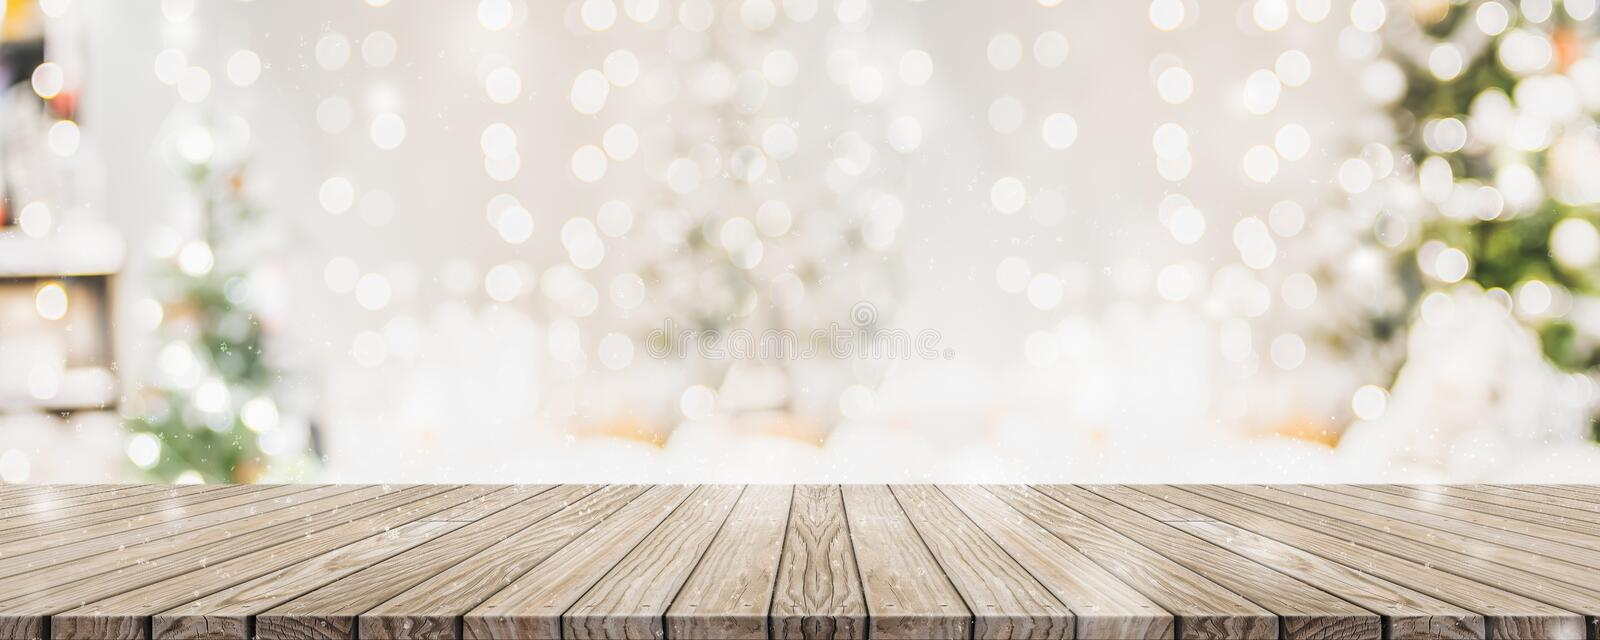 Empty woooden table top with abstract warm living room decor with christmas tree string light blur background with snow,Holiday stock photography